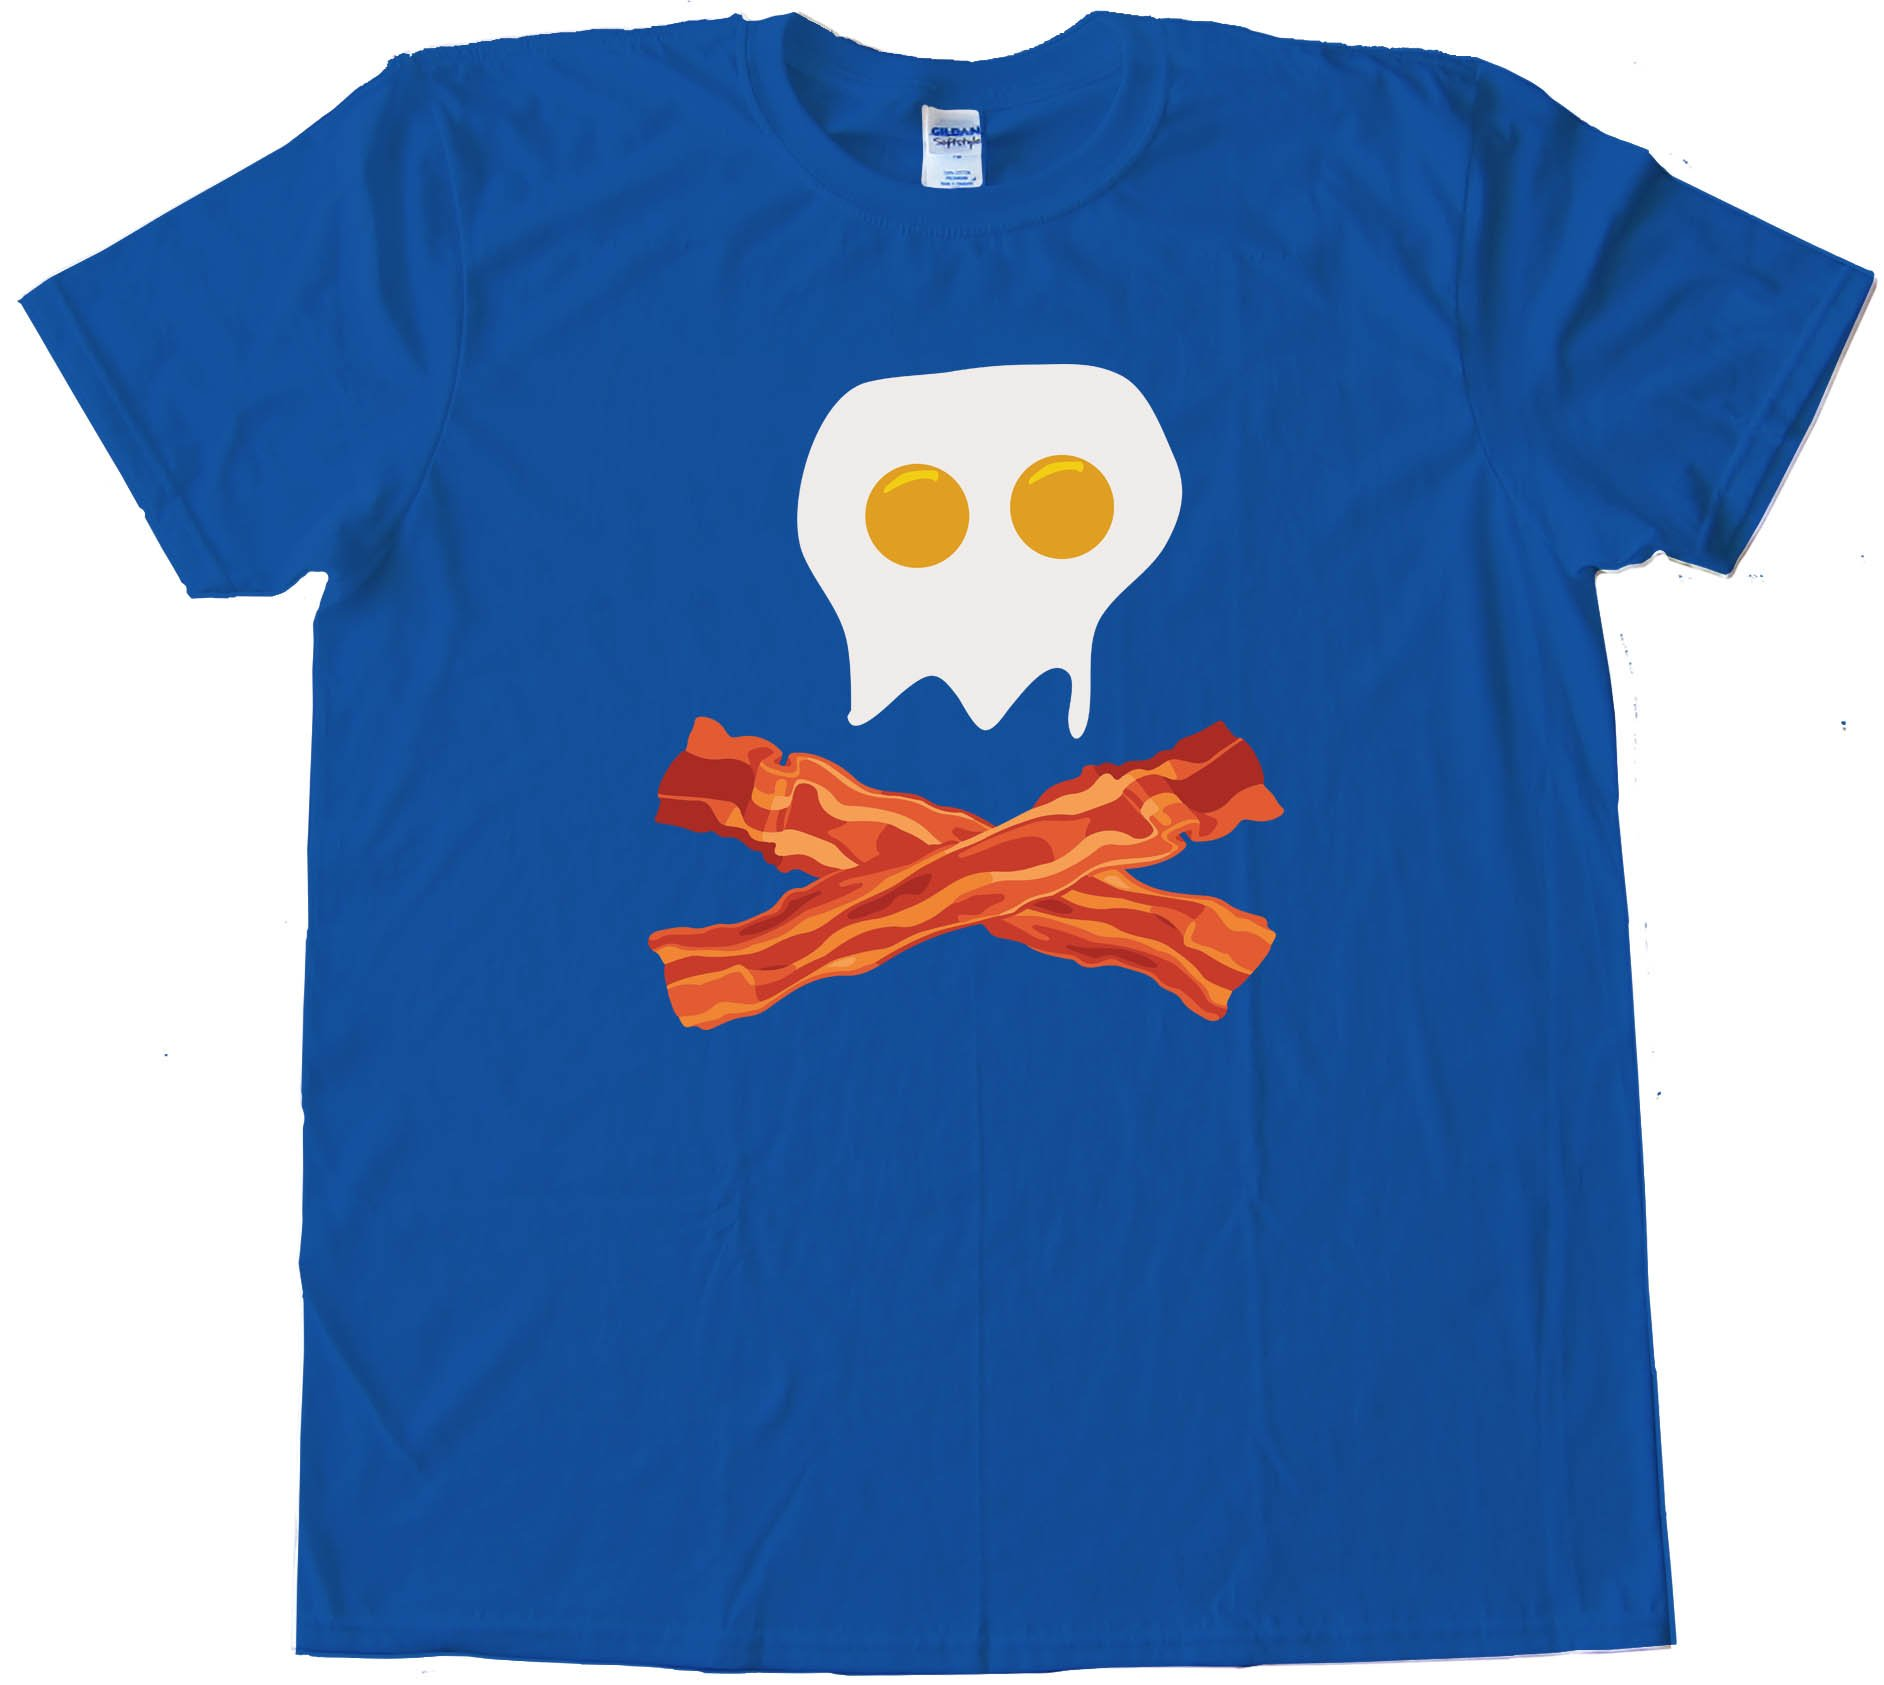 Bacon And Eggs Skull &Amp; Crossbones - Breakfast Pirate - Tee Shirt